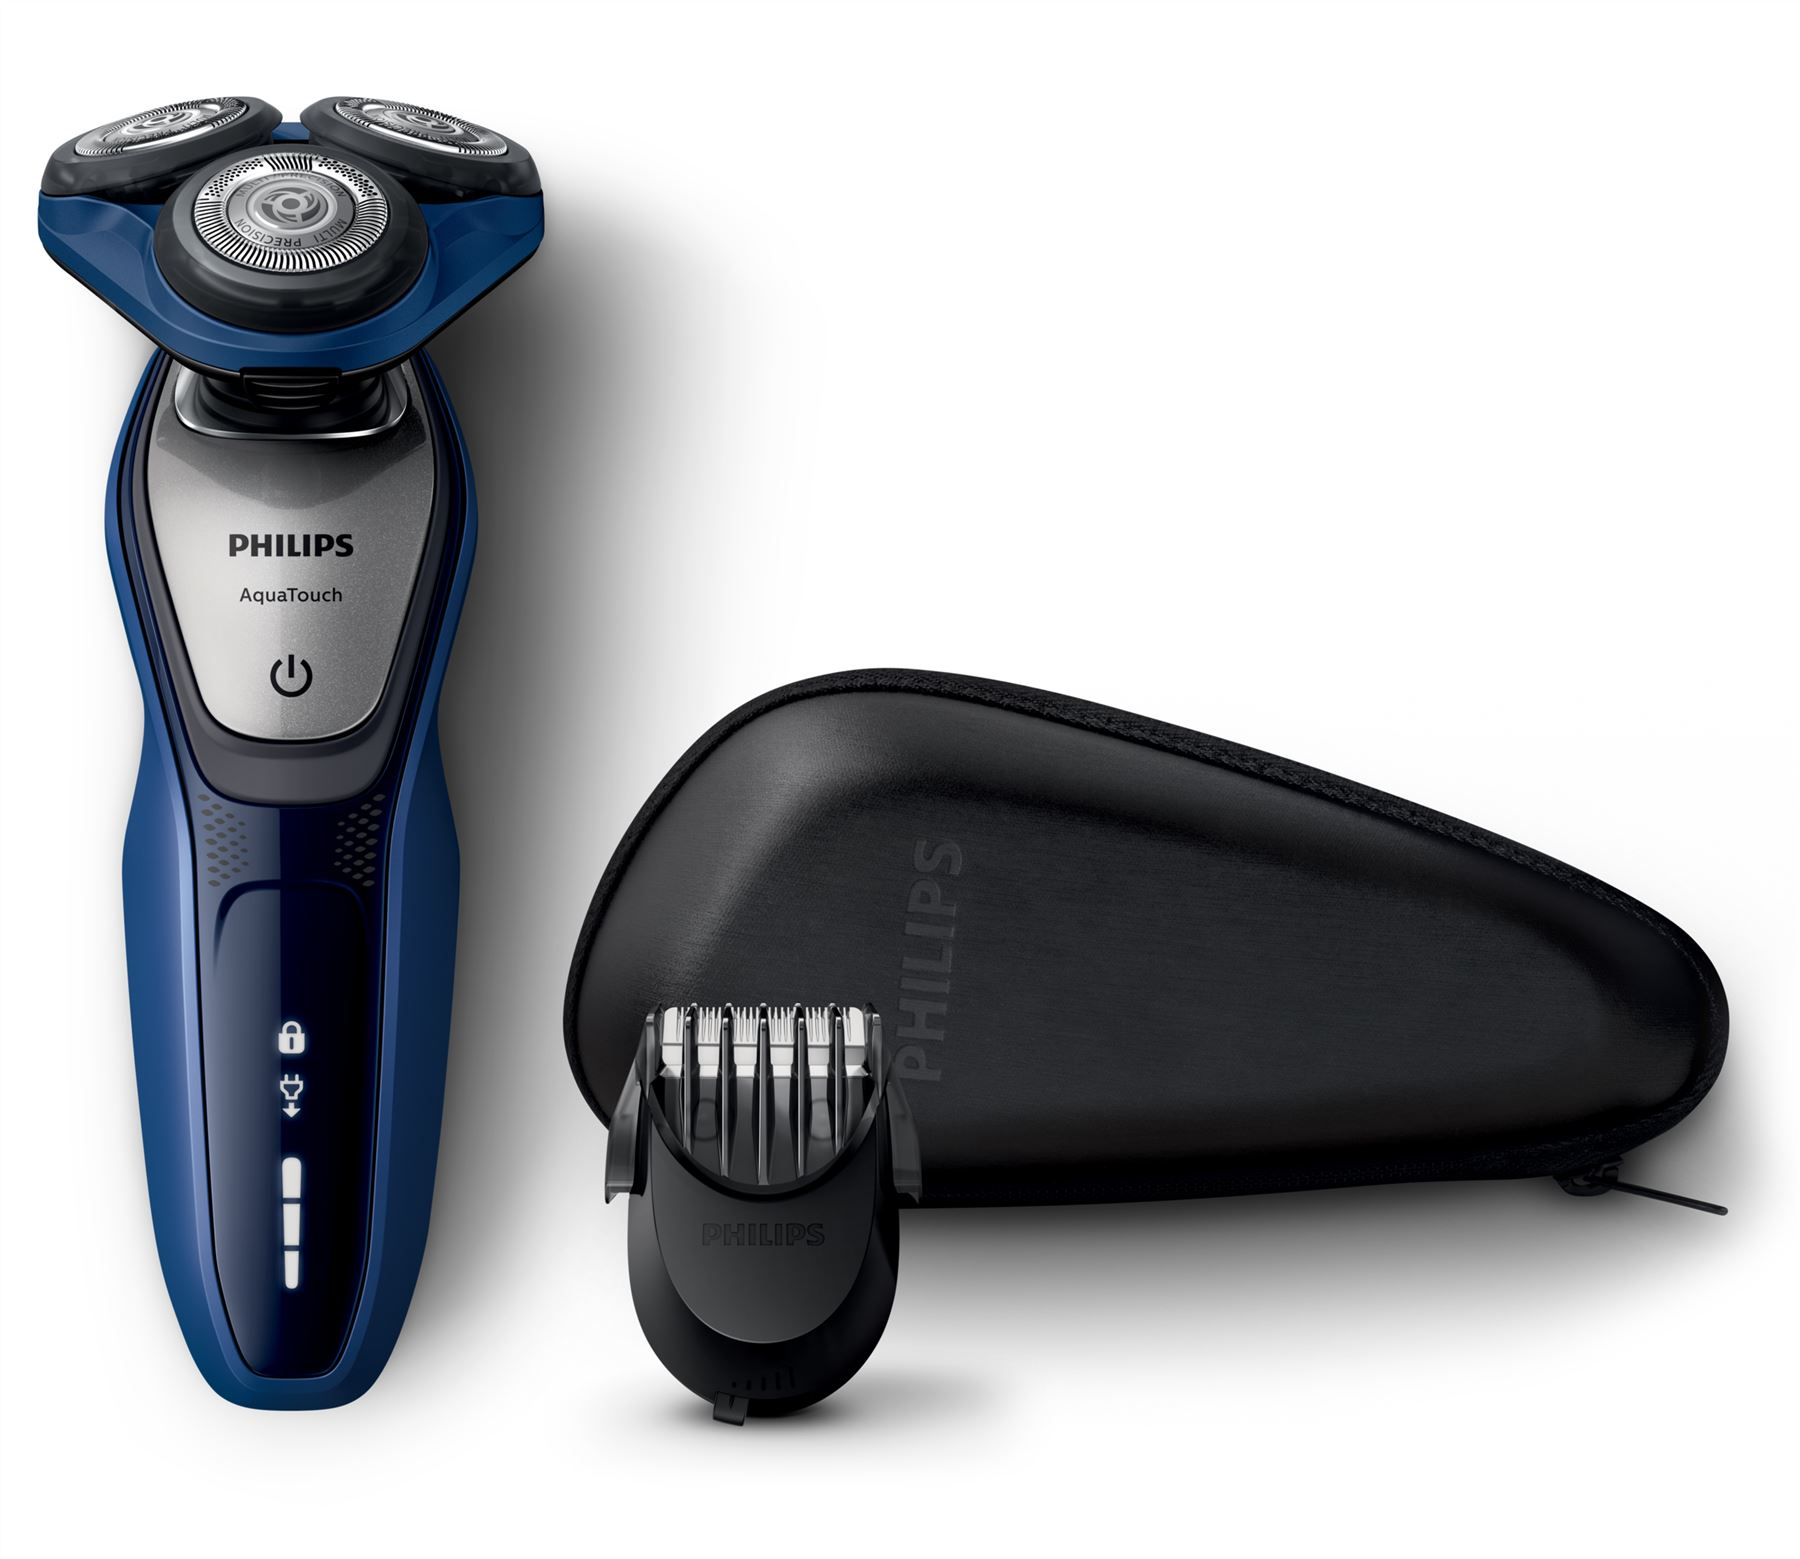 philips aquatouch electric shaver aquatec wet dry beard styler cordless s5600 41 ebay. Black Bedroom Furniture Sets. Home Design Ideas